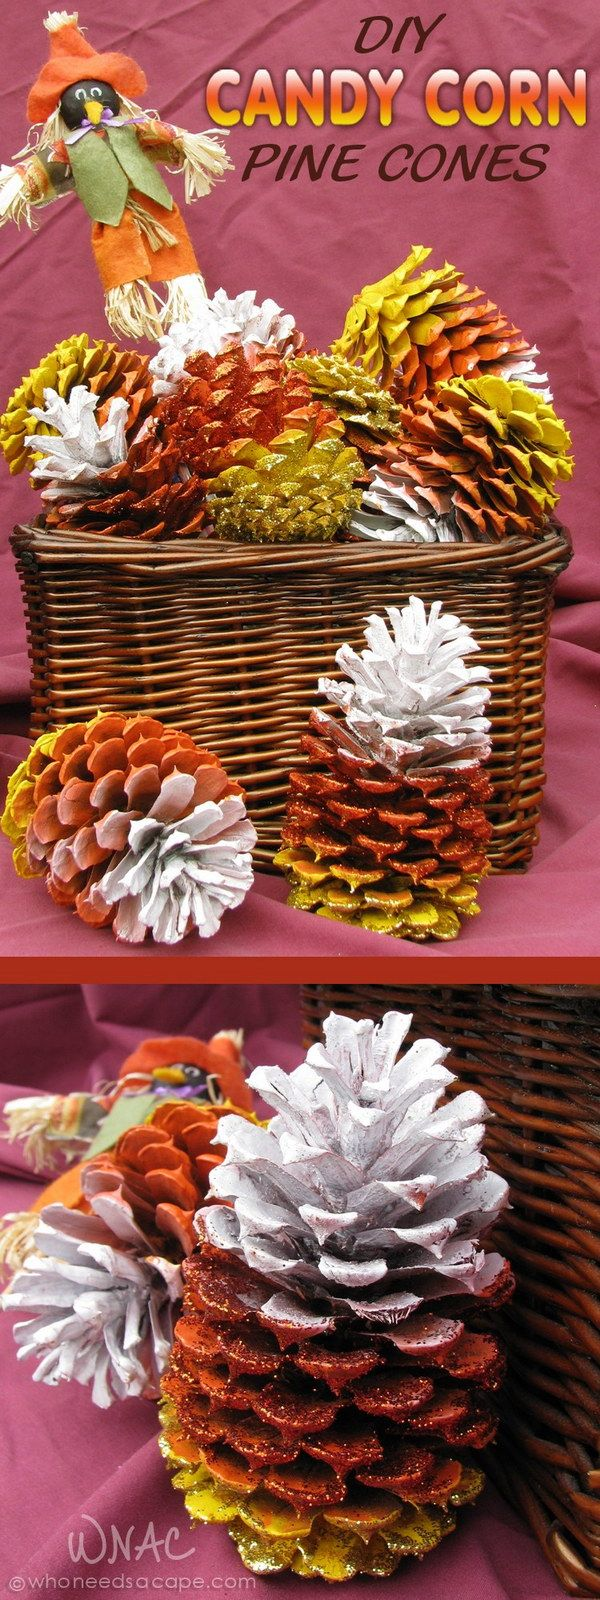 DIY Candy Corn Pine Cones.